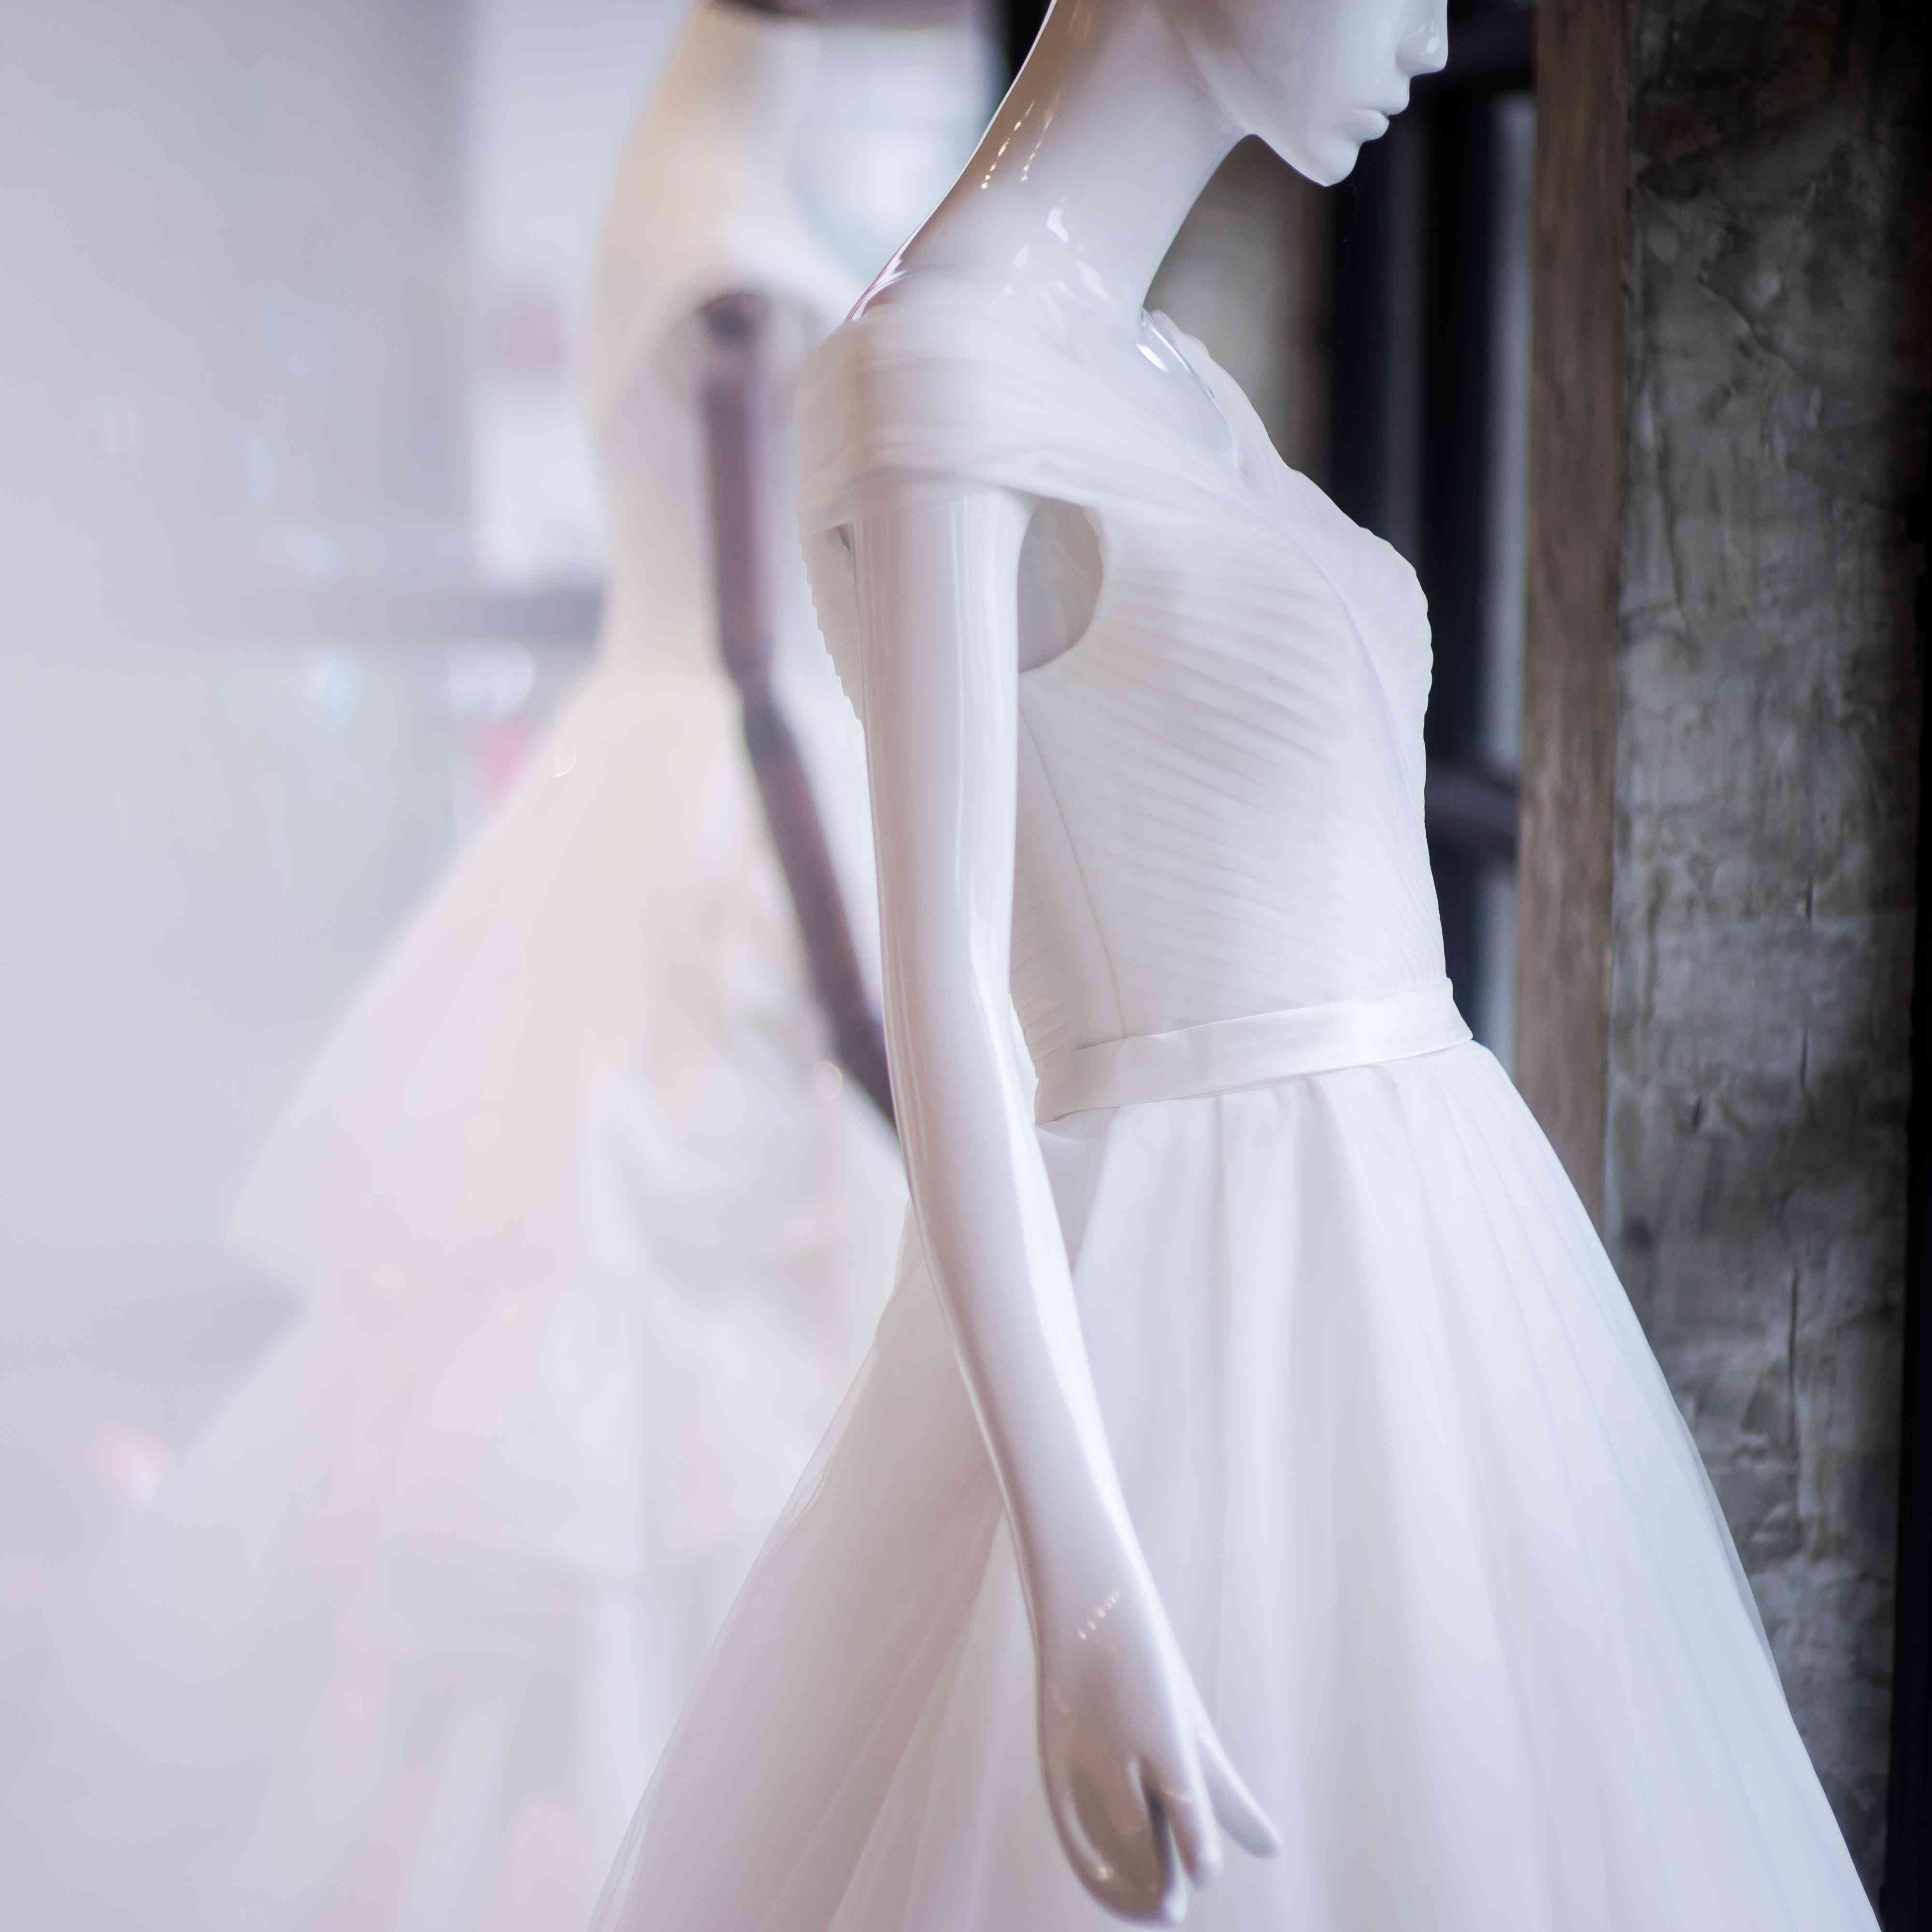 U K Bridal Store Includes Disabled Mannequin In Wedding